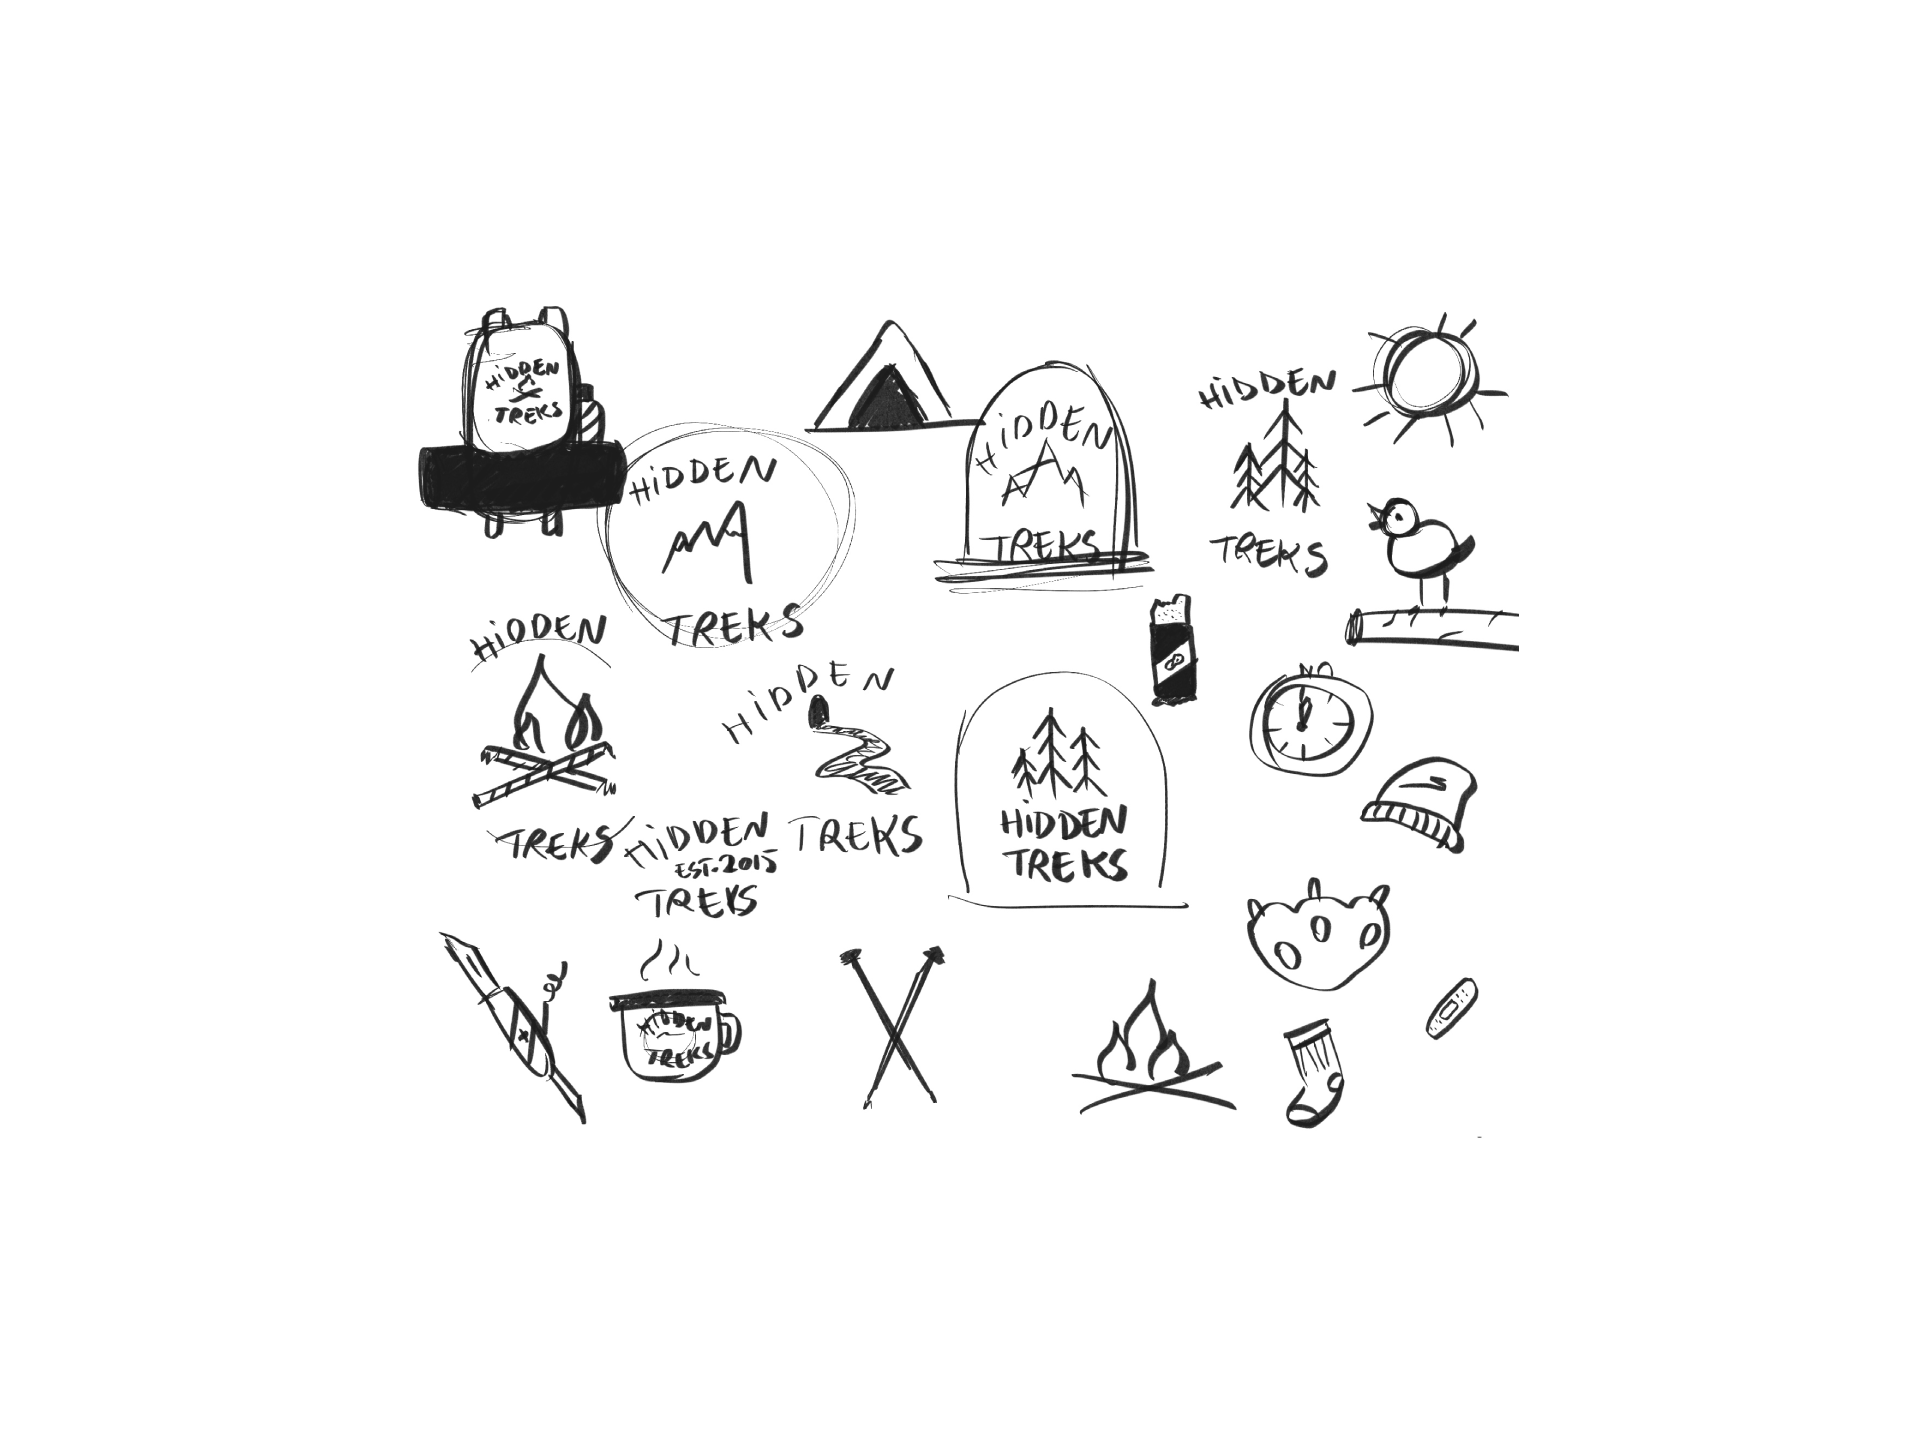 Sketches of hiking gear